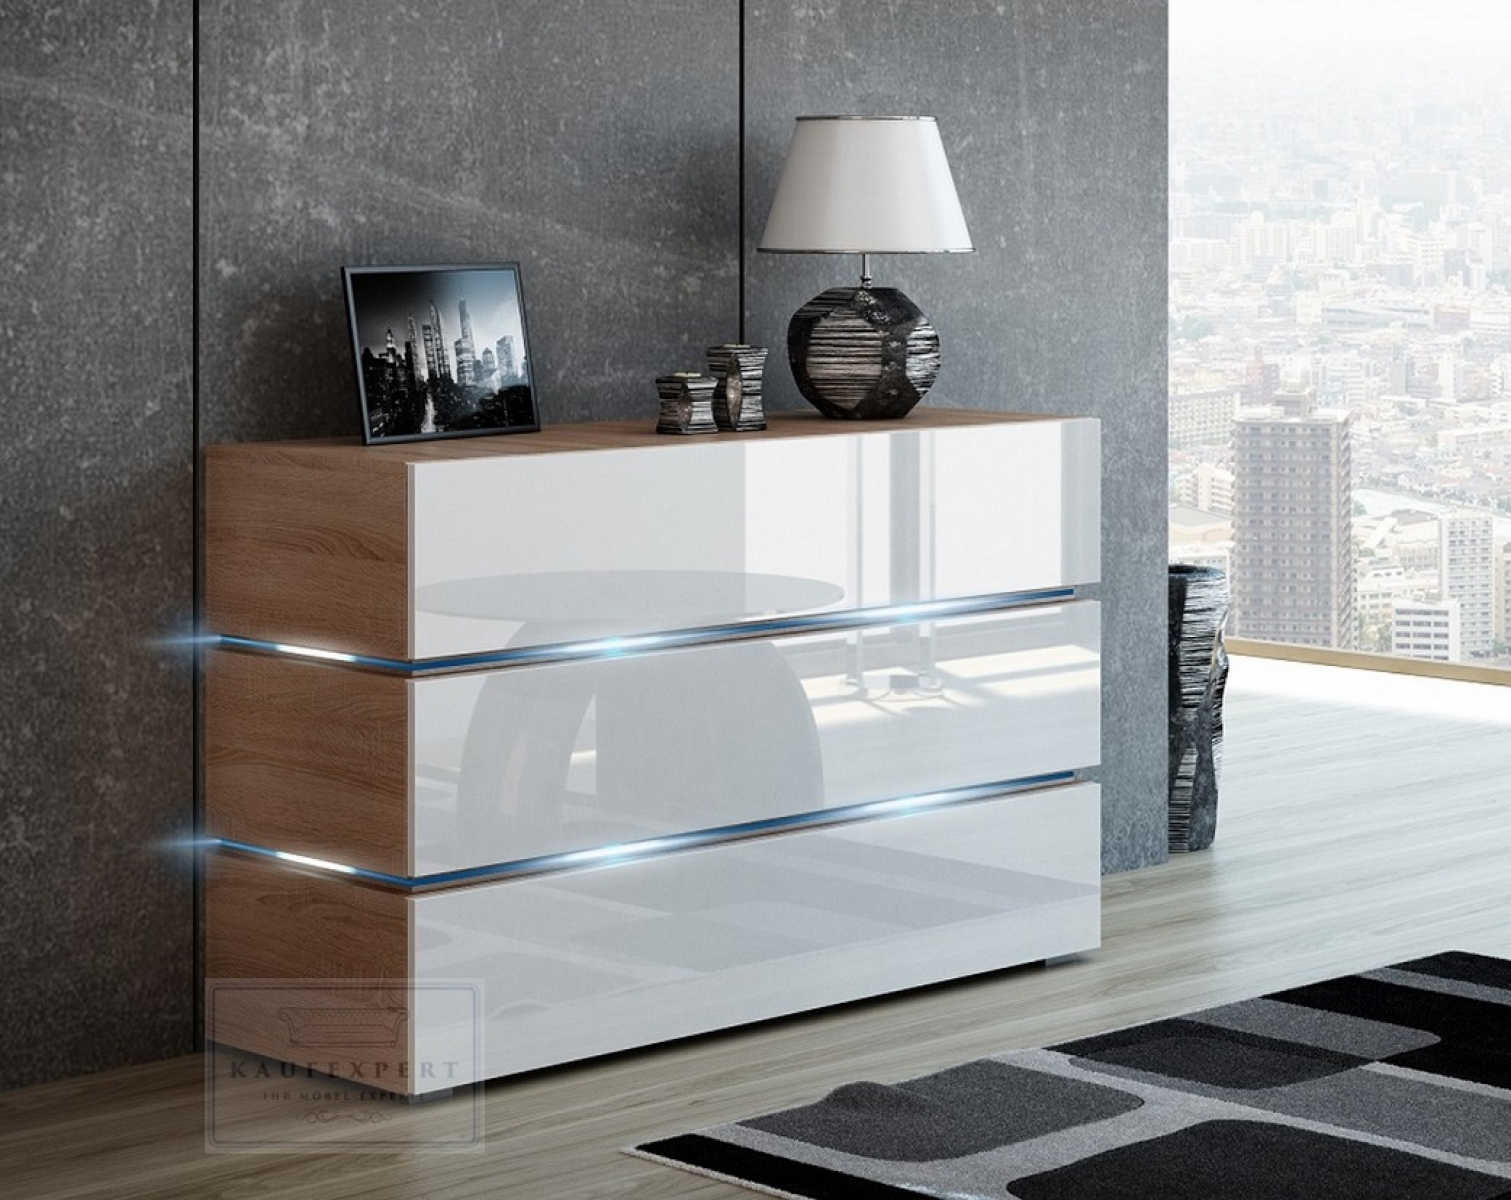 kaufexpert kommode shine sideboard 120 cm wei hochglanz. Black Bedroom Furniture Sets. Home Design Ideas